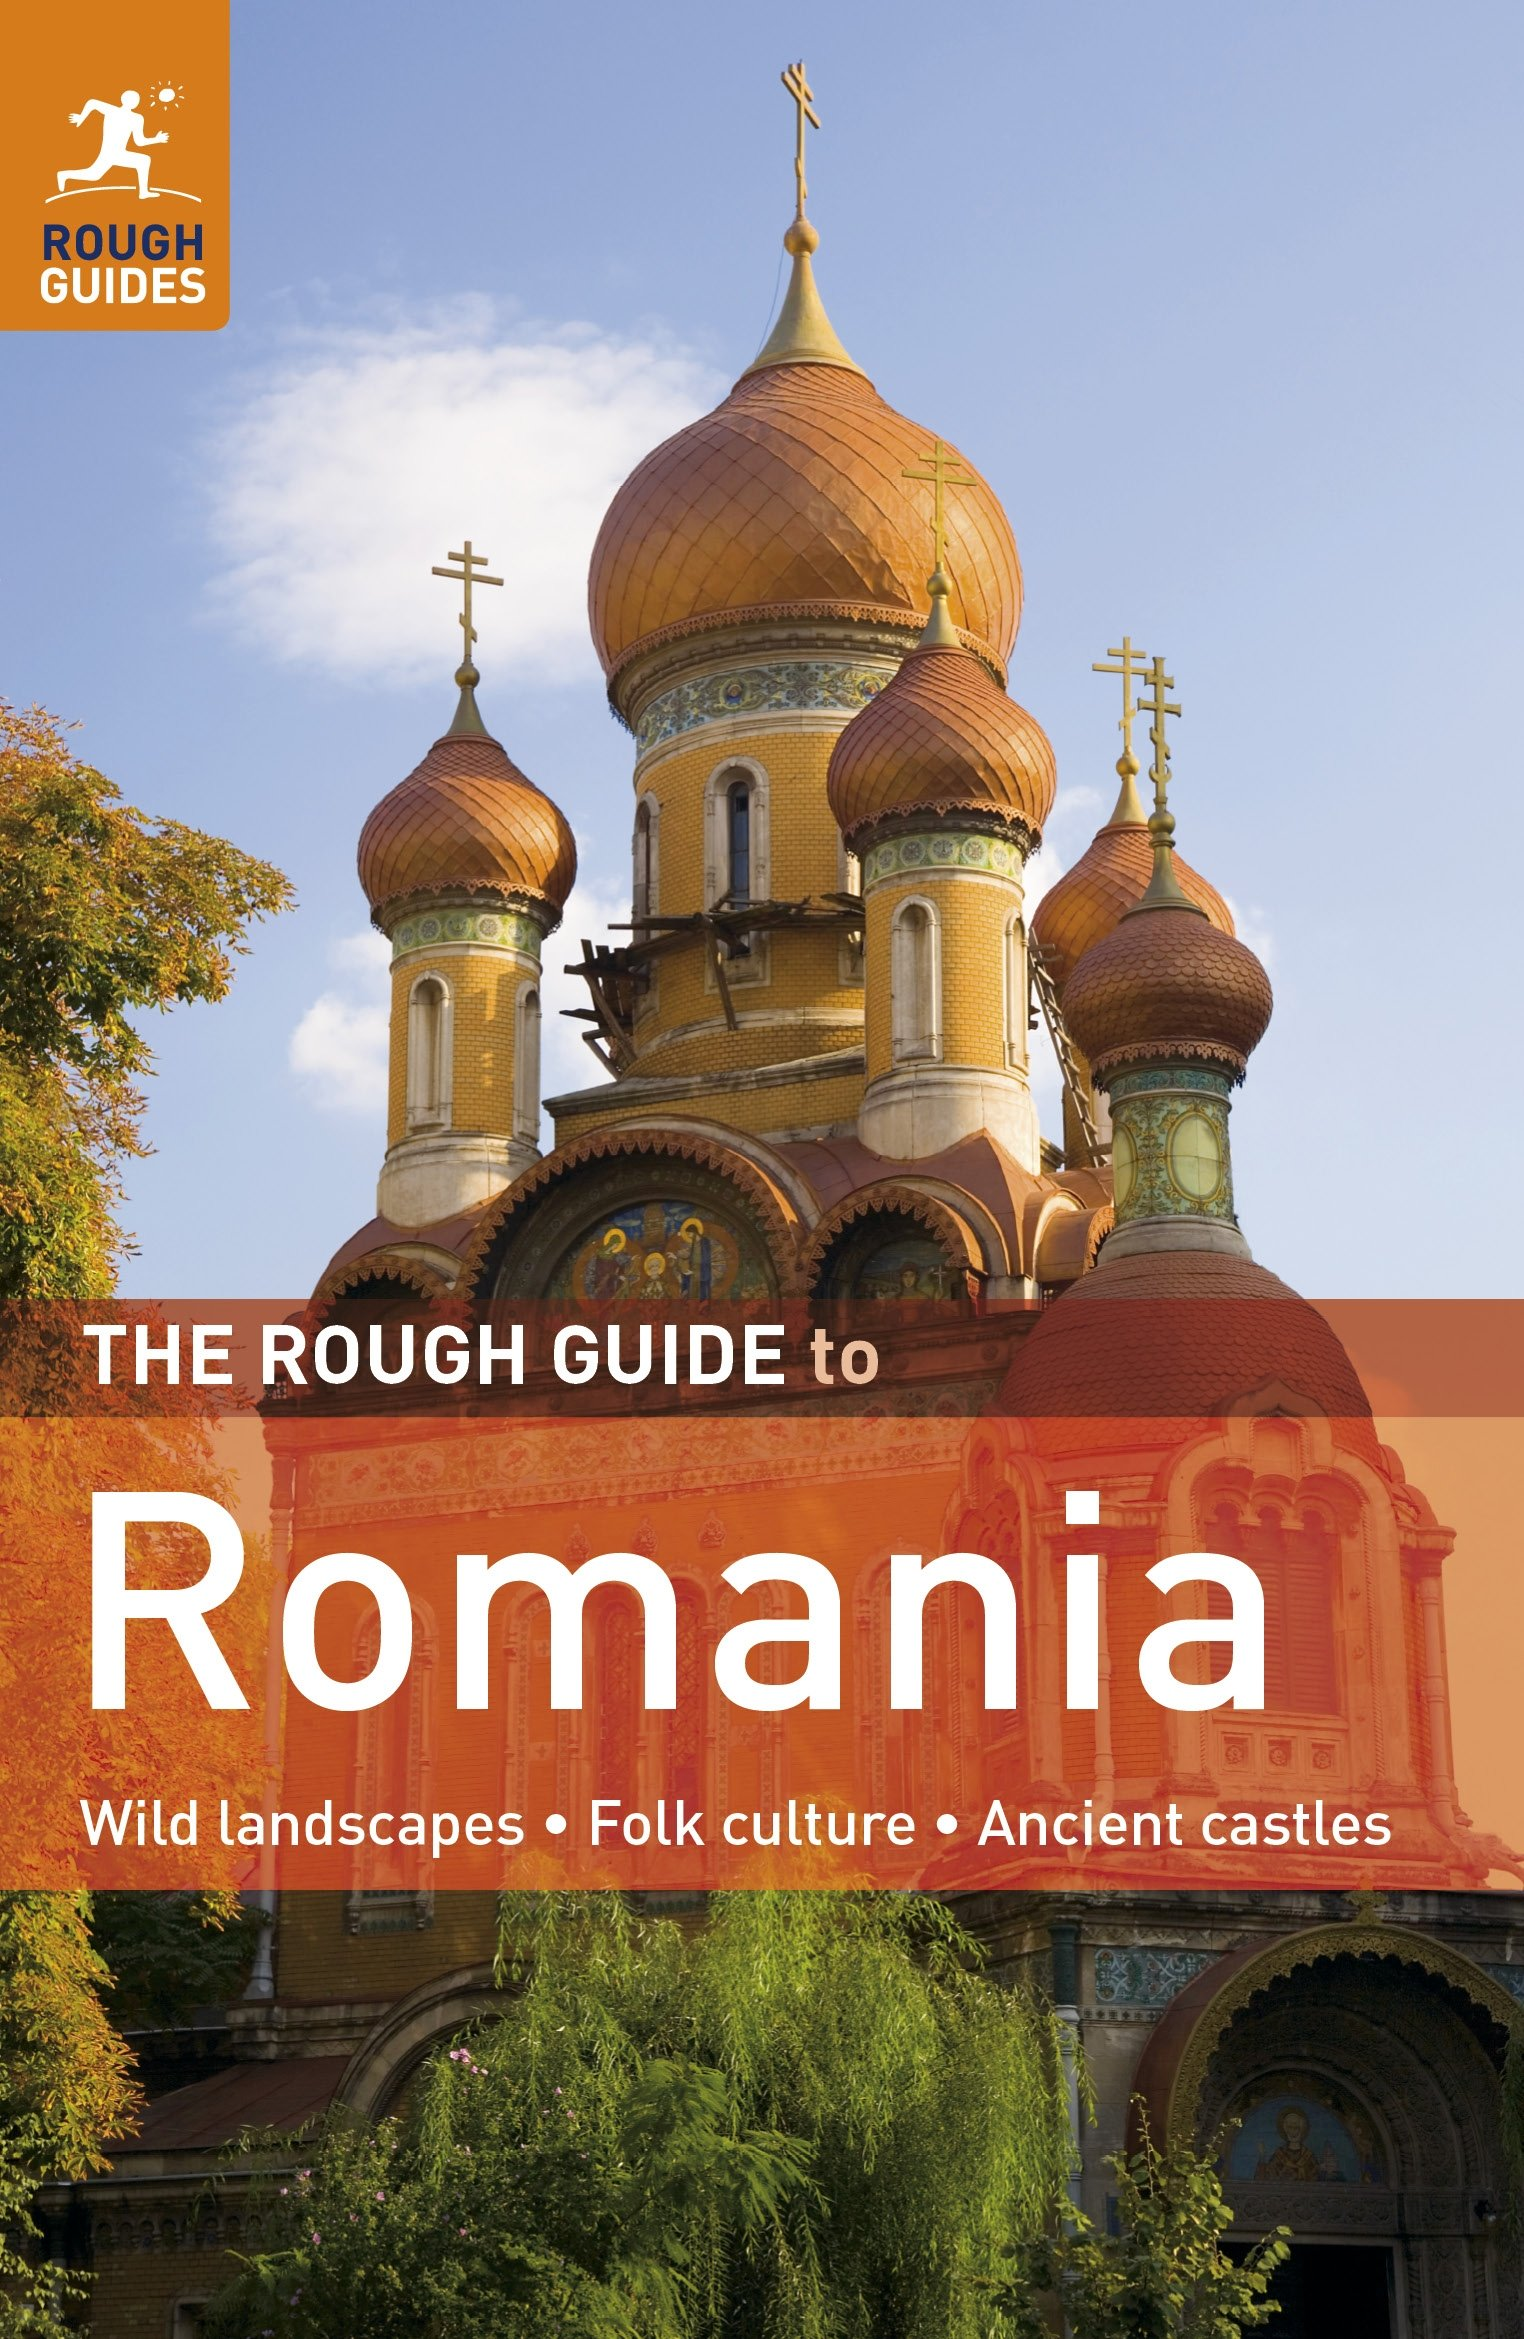 Buy the rough guide to romania by darren (norm) longley with free.